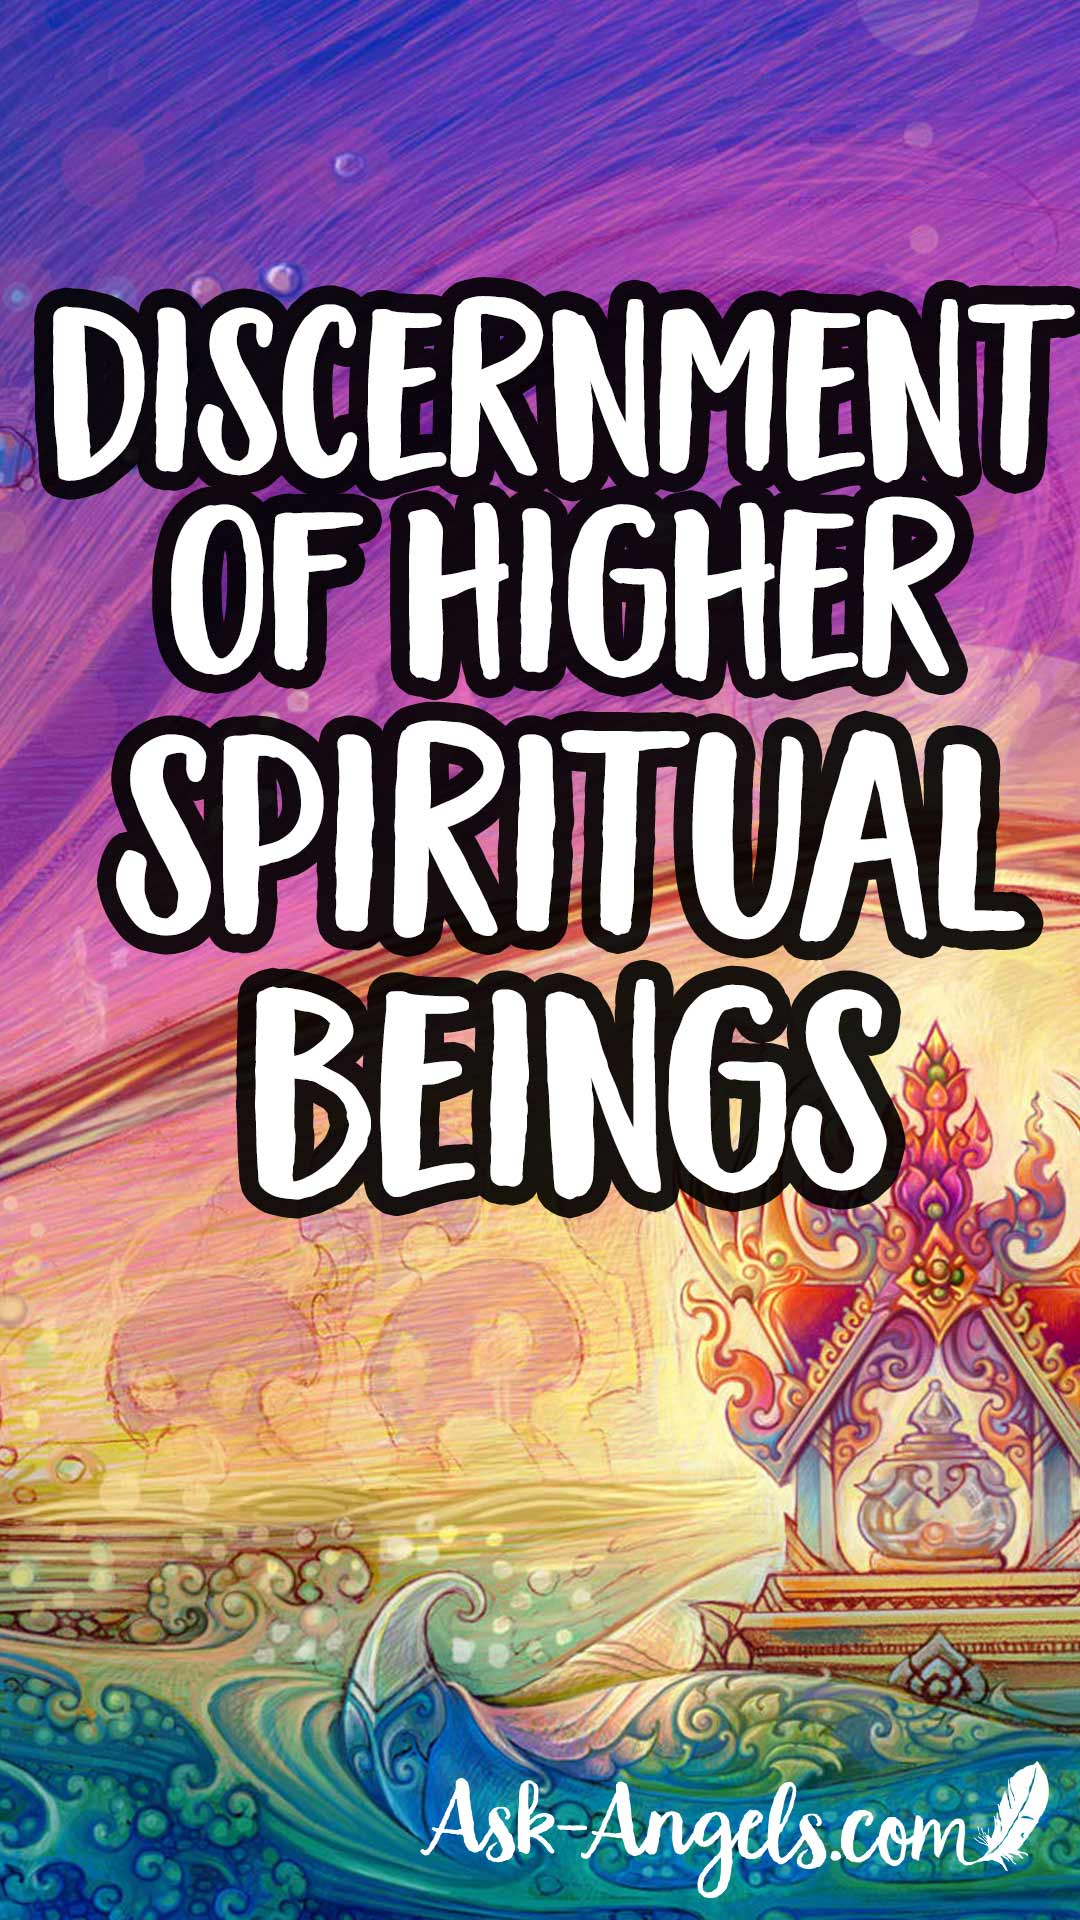 Discernment of Higher Spiritual Beings